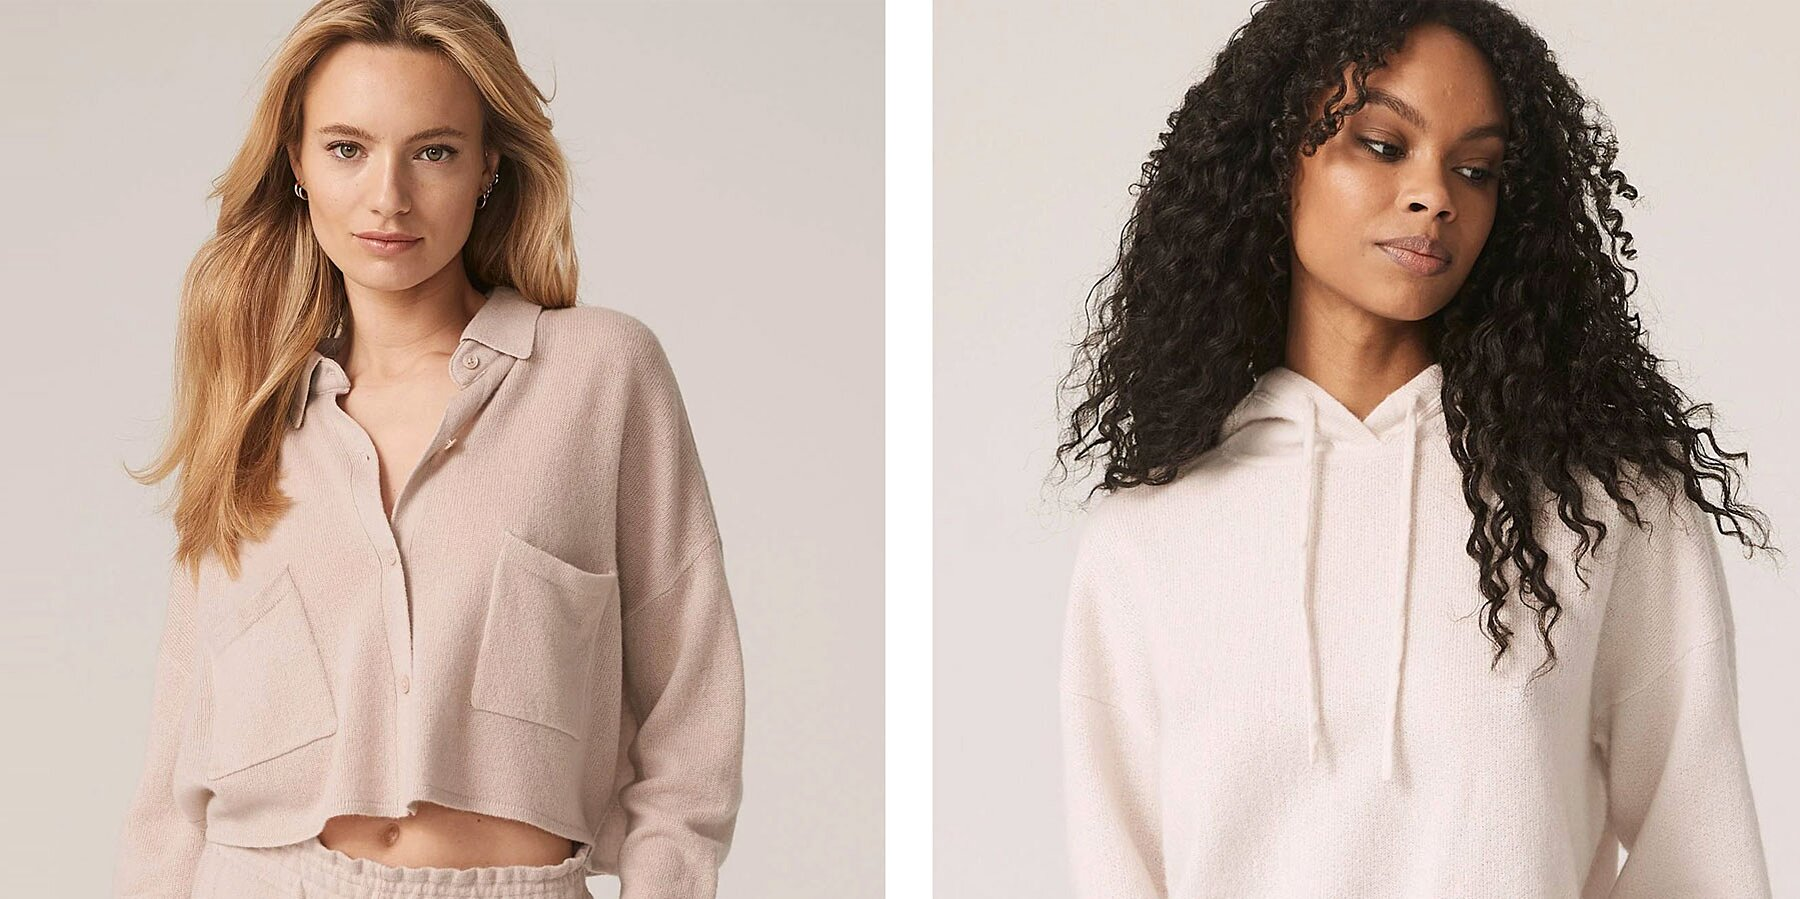 Shoppers Love This Brand's Cashmere Loungewear, and It Just Launched Its Most Sustainable Collection yet